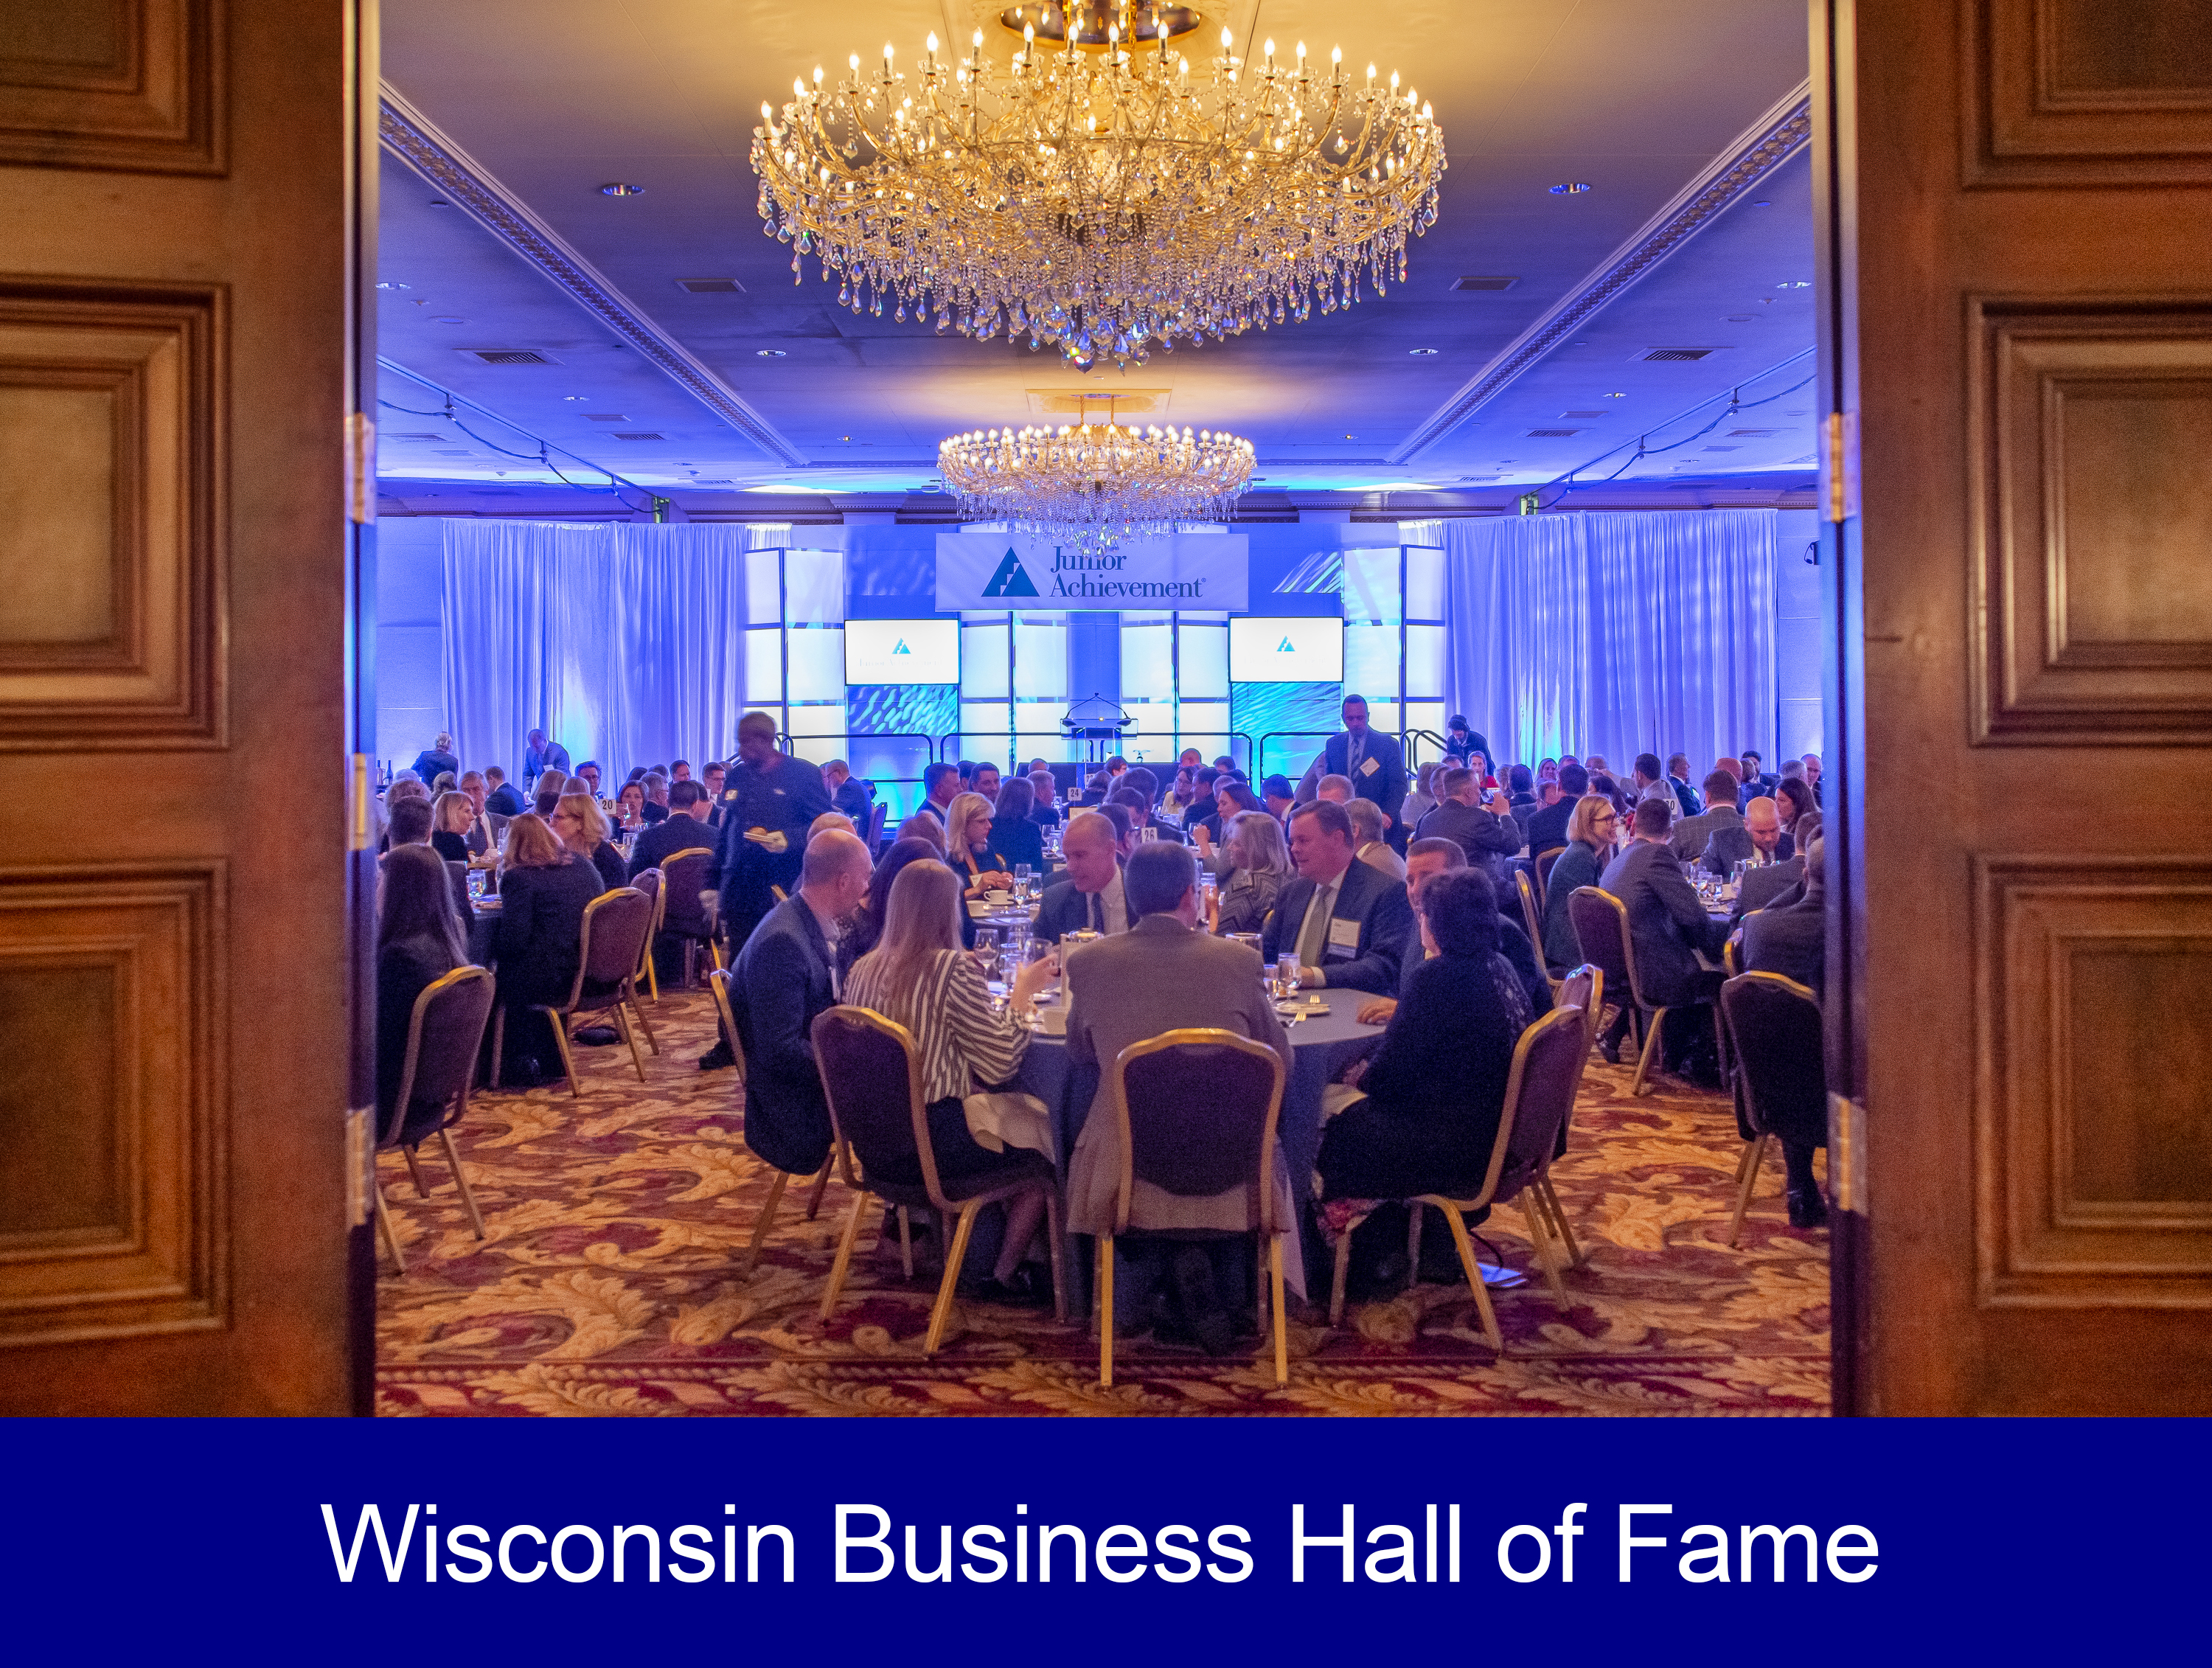 Wisconsin Business Hall of Fame